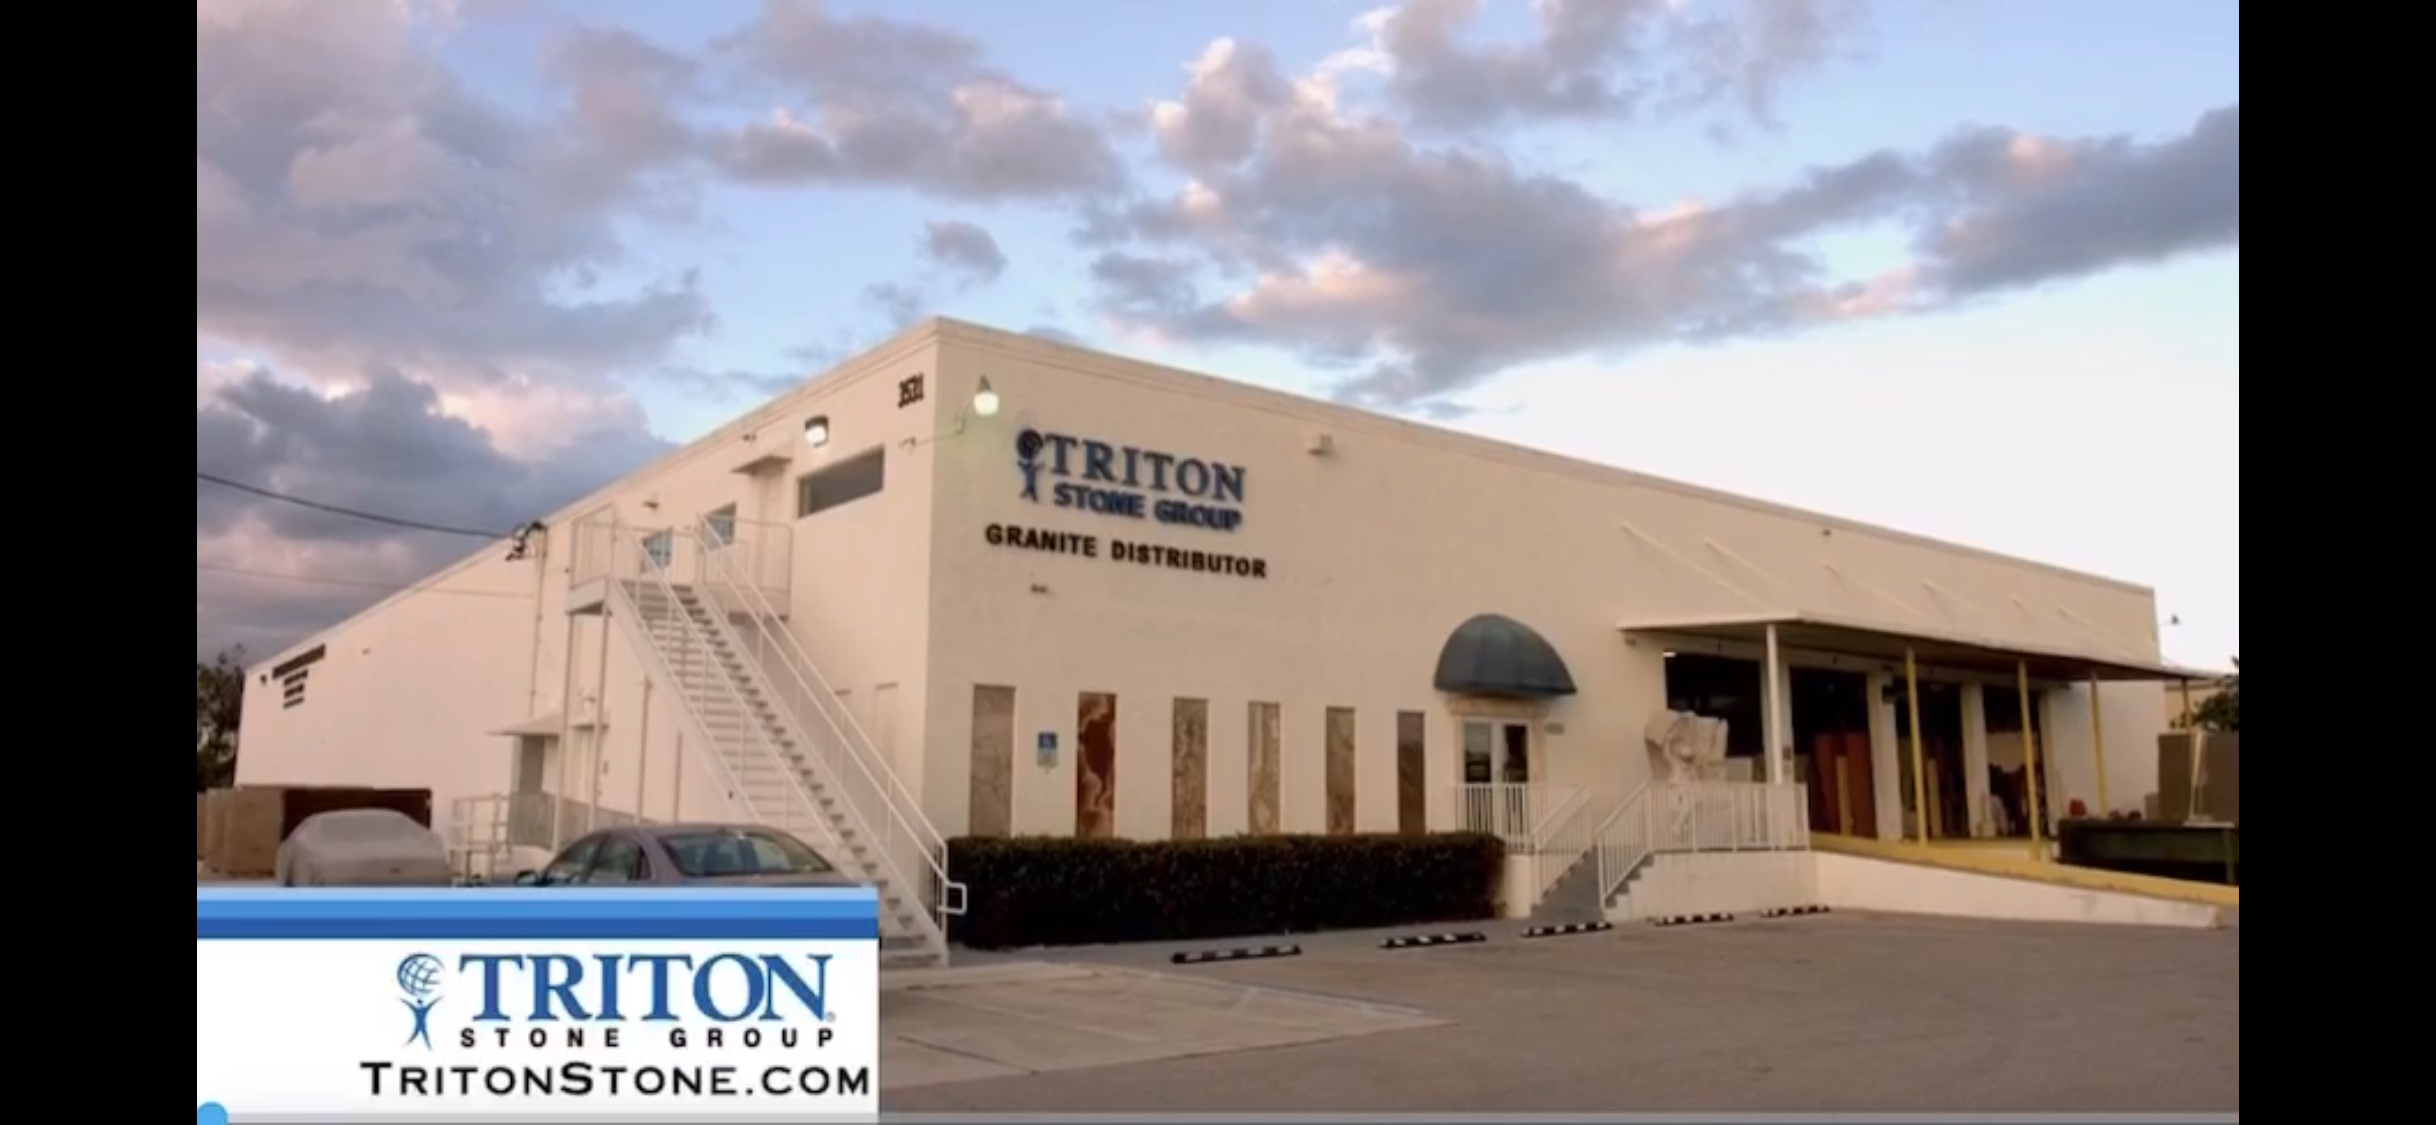 Triton Stone Group of Fort Myers